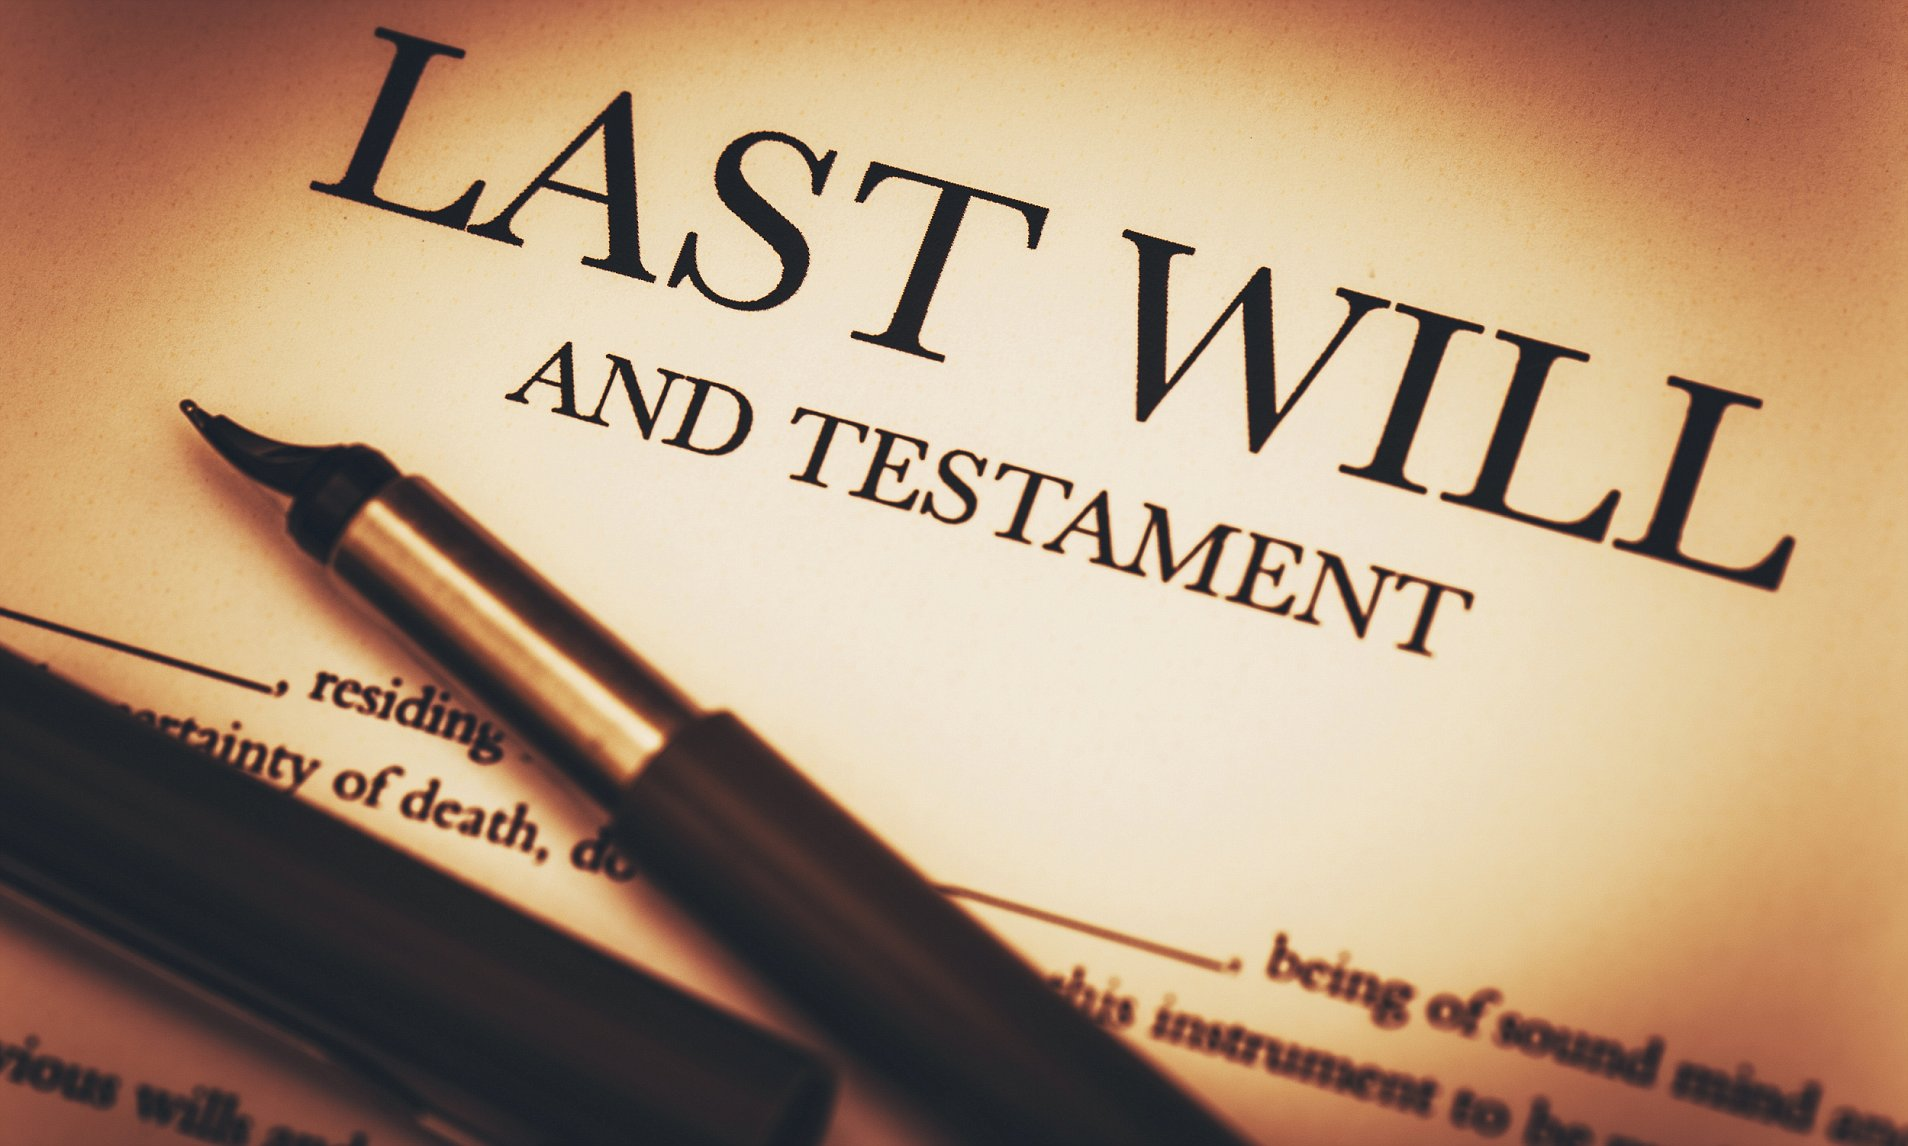 Pros associated with living wills